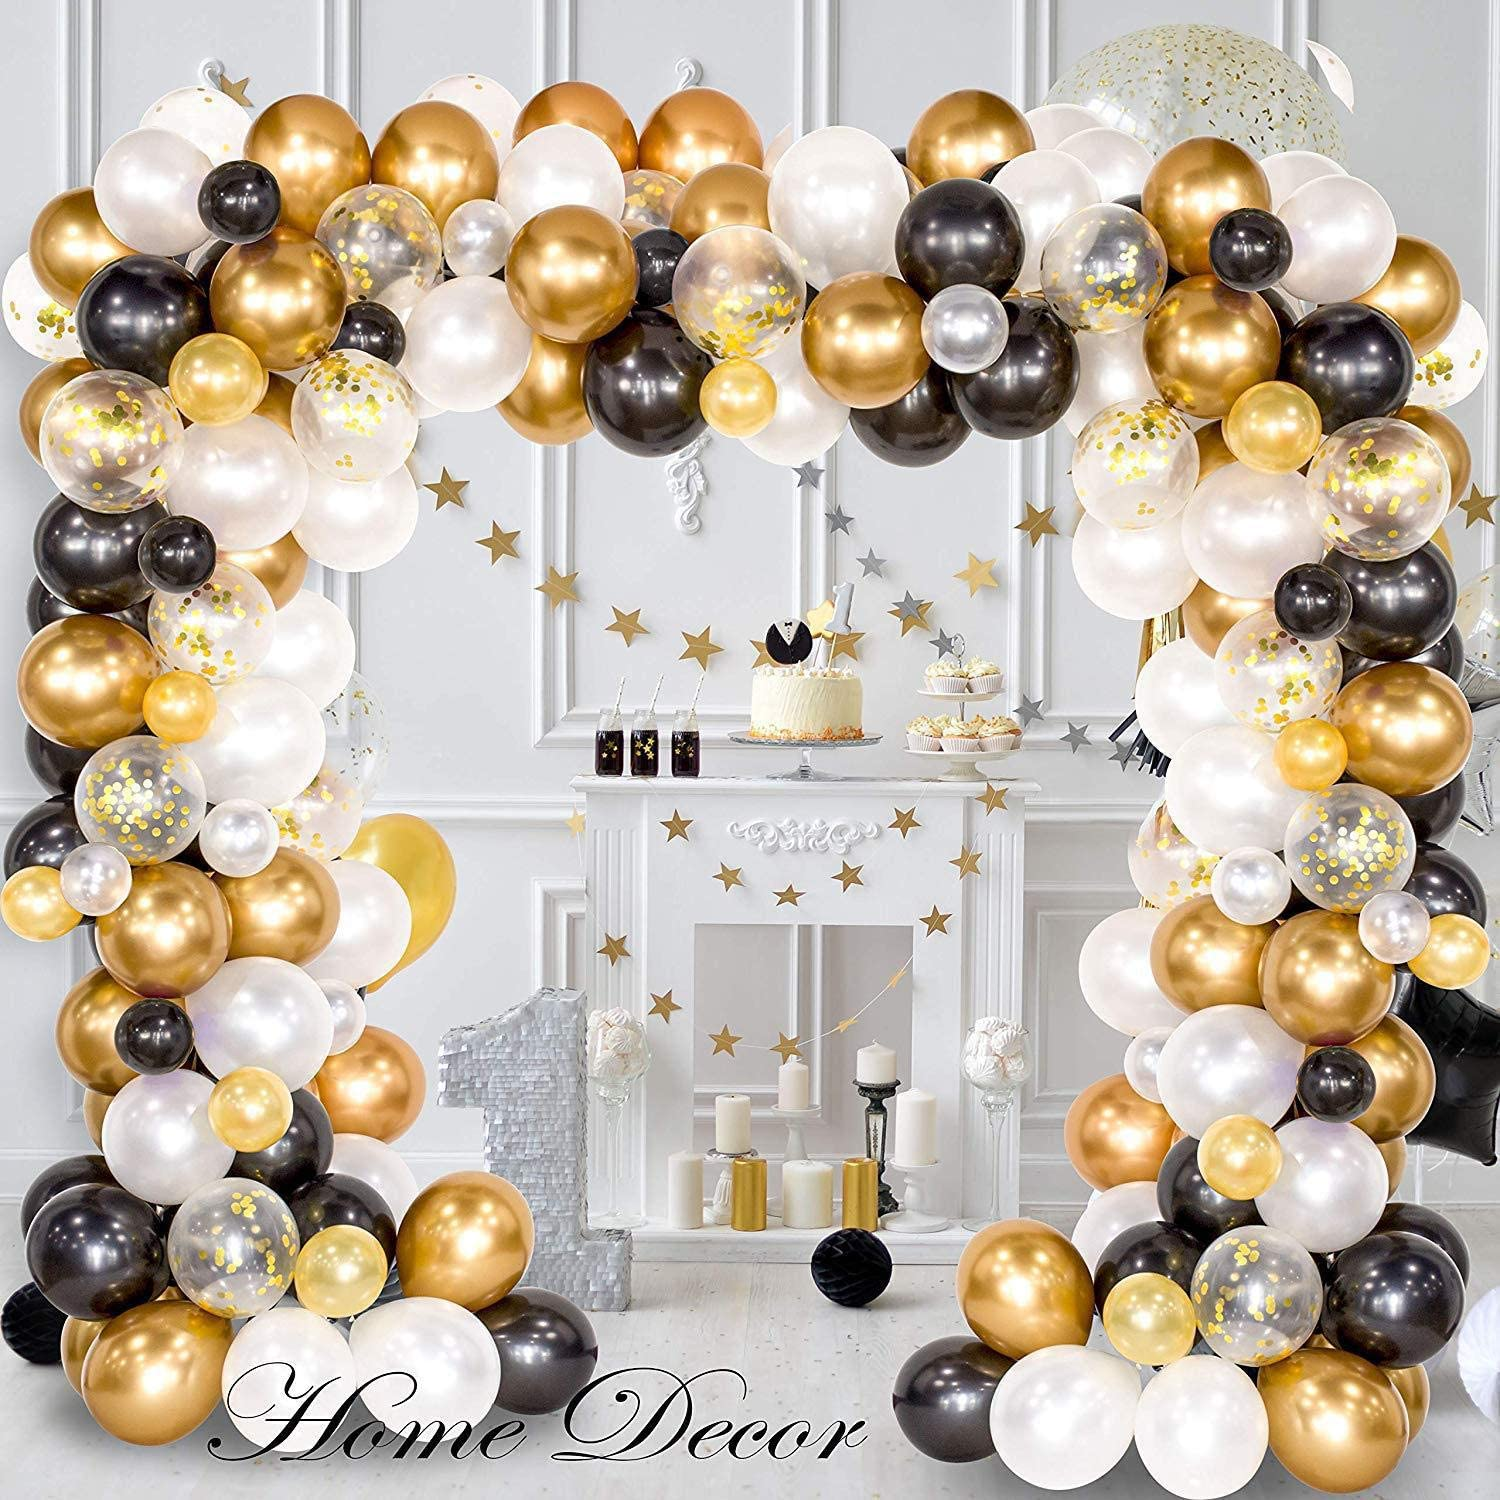 Junxi Balloon Arch & Garland Kit, 120Pcs Black, White, Gold Confetti and Metal Latex Balloons with 1pcs Tying Tool, Balloon Strip Tape for Graduation, Wedding, Birthday Decor